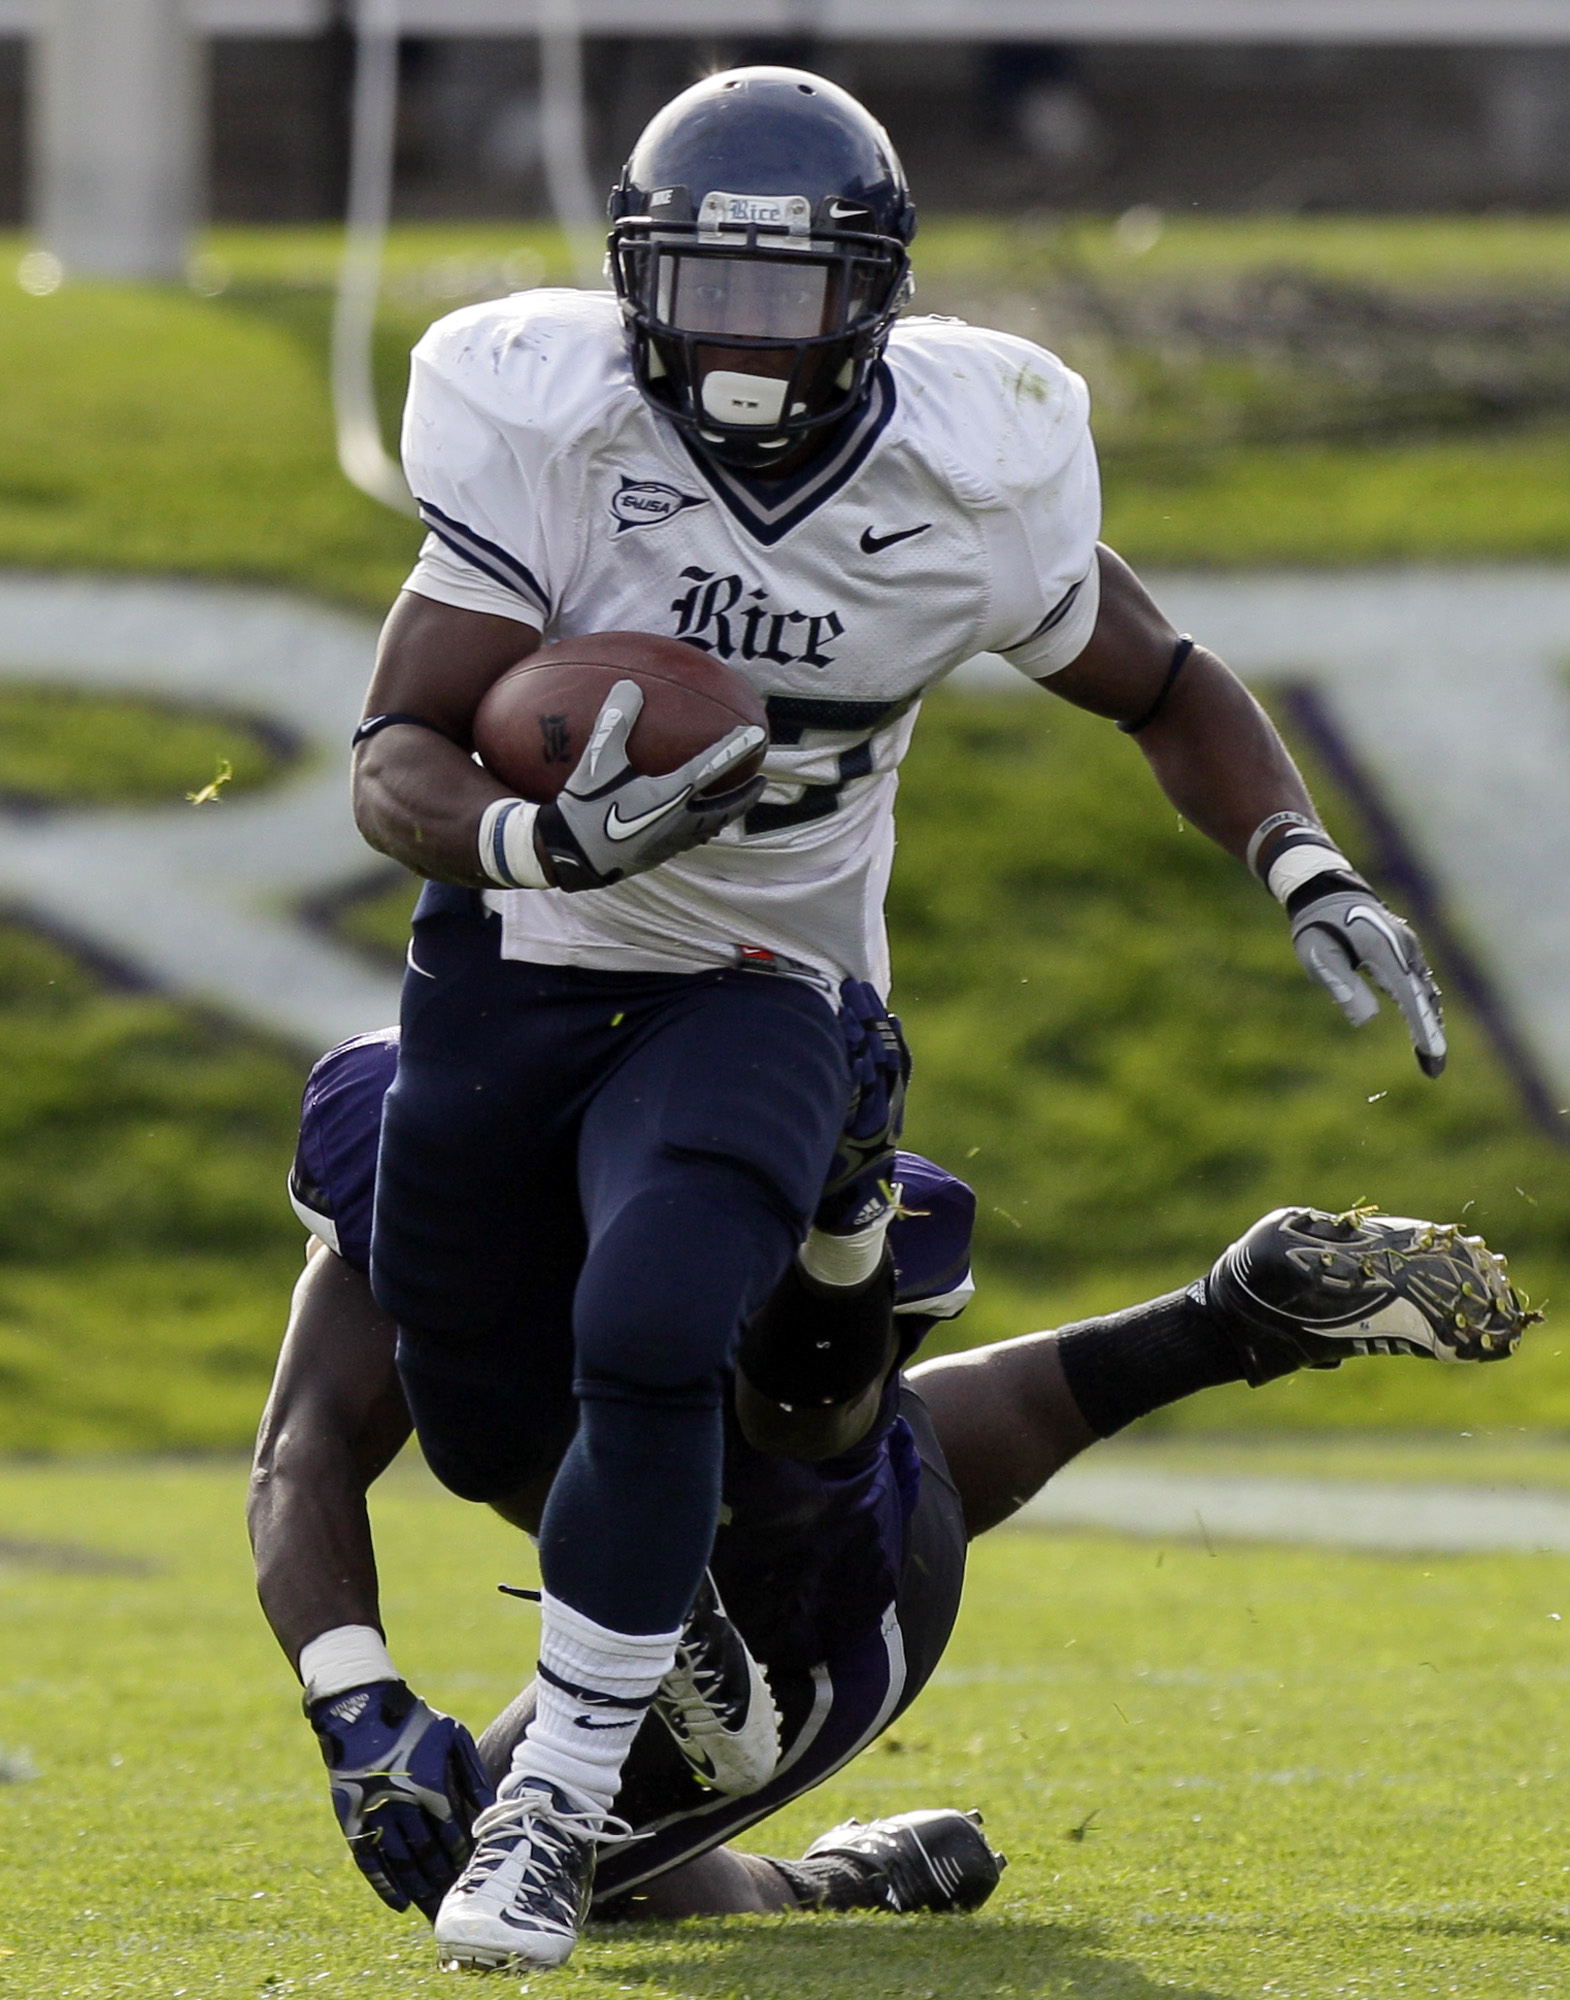 Rice running back Tyler Smith, who had 84 yards on a season-high 21 carries, runs past Northwestern linebacker Damien Proby in the first half.